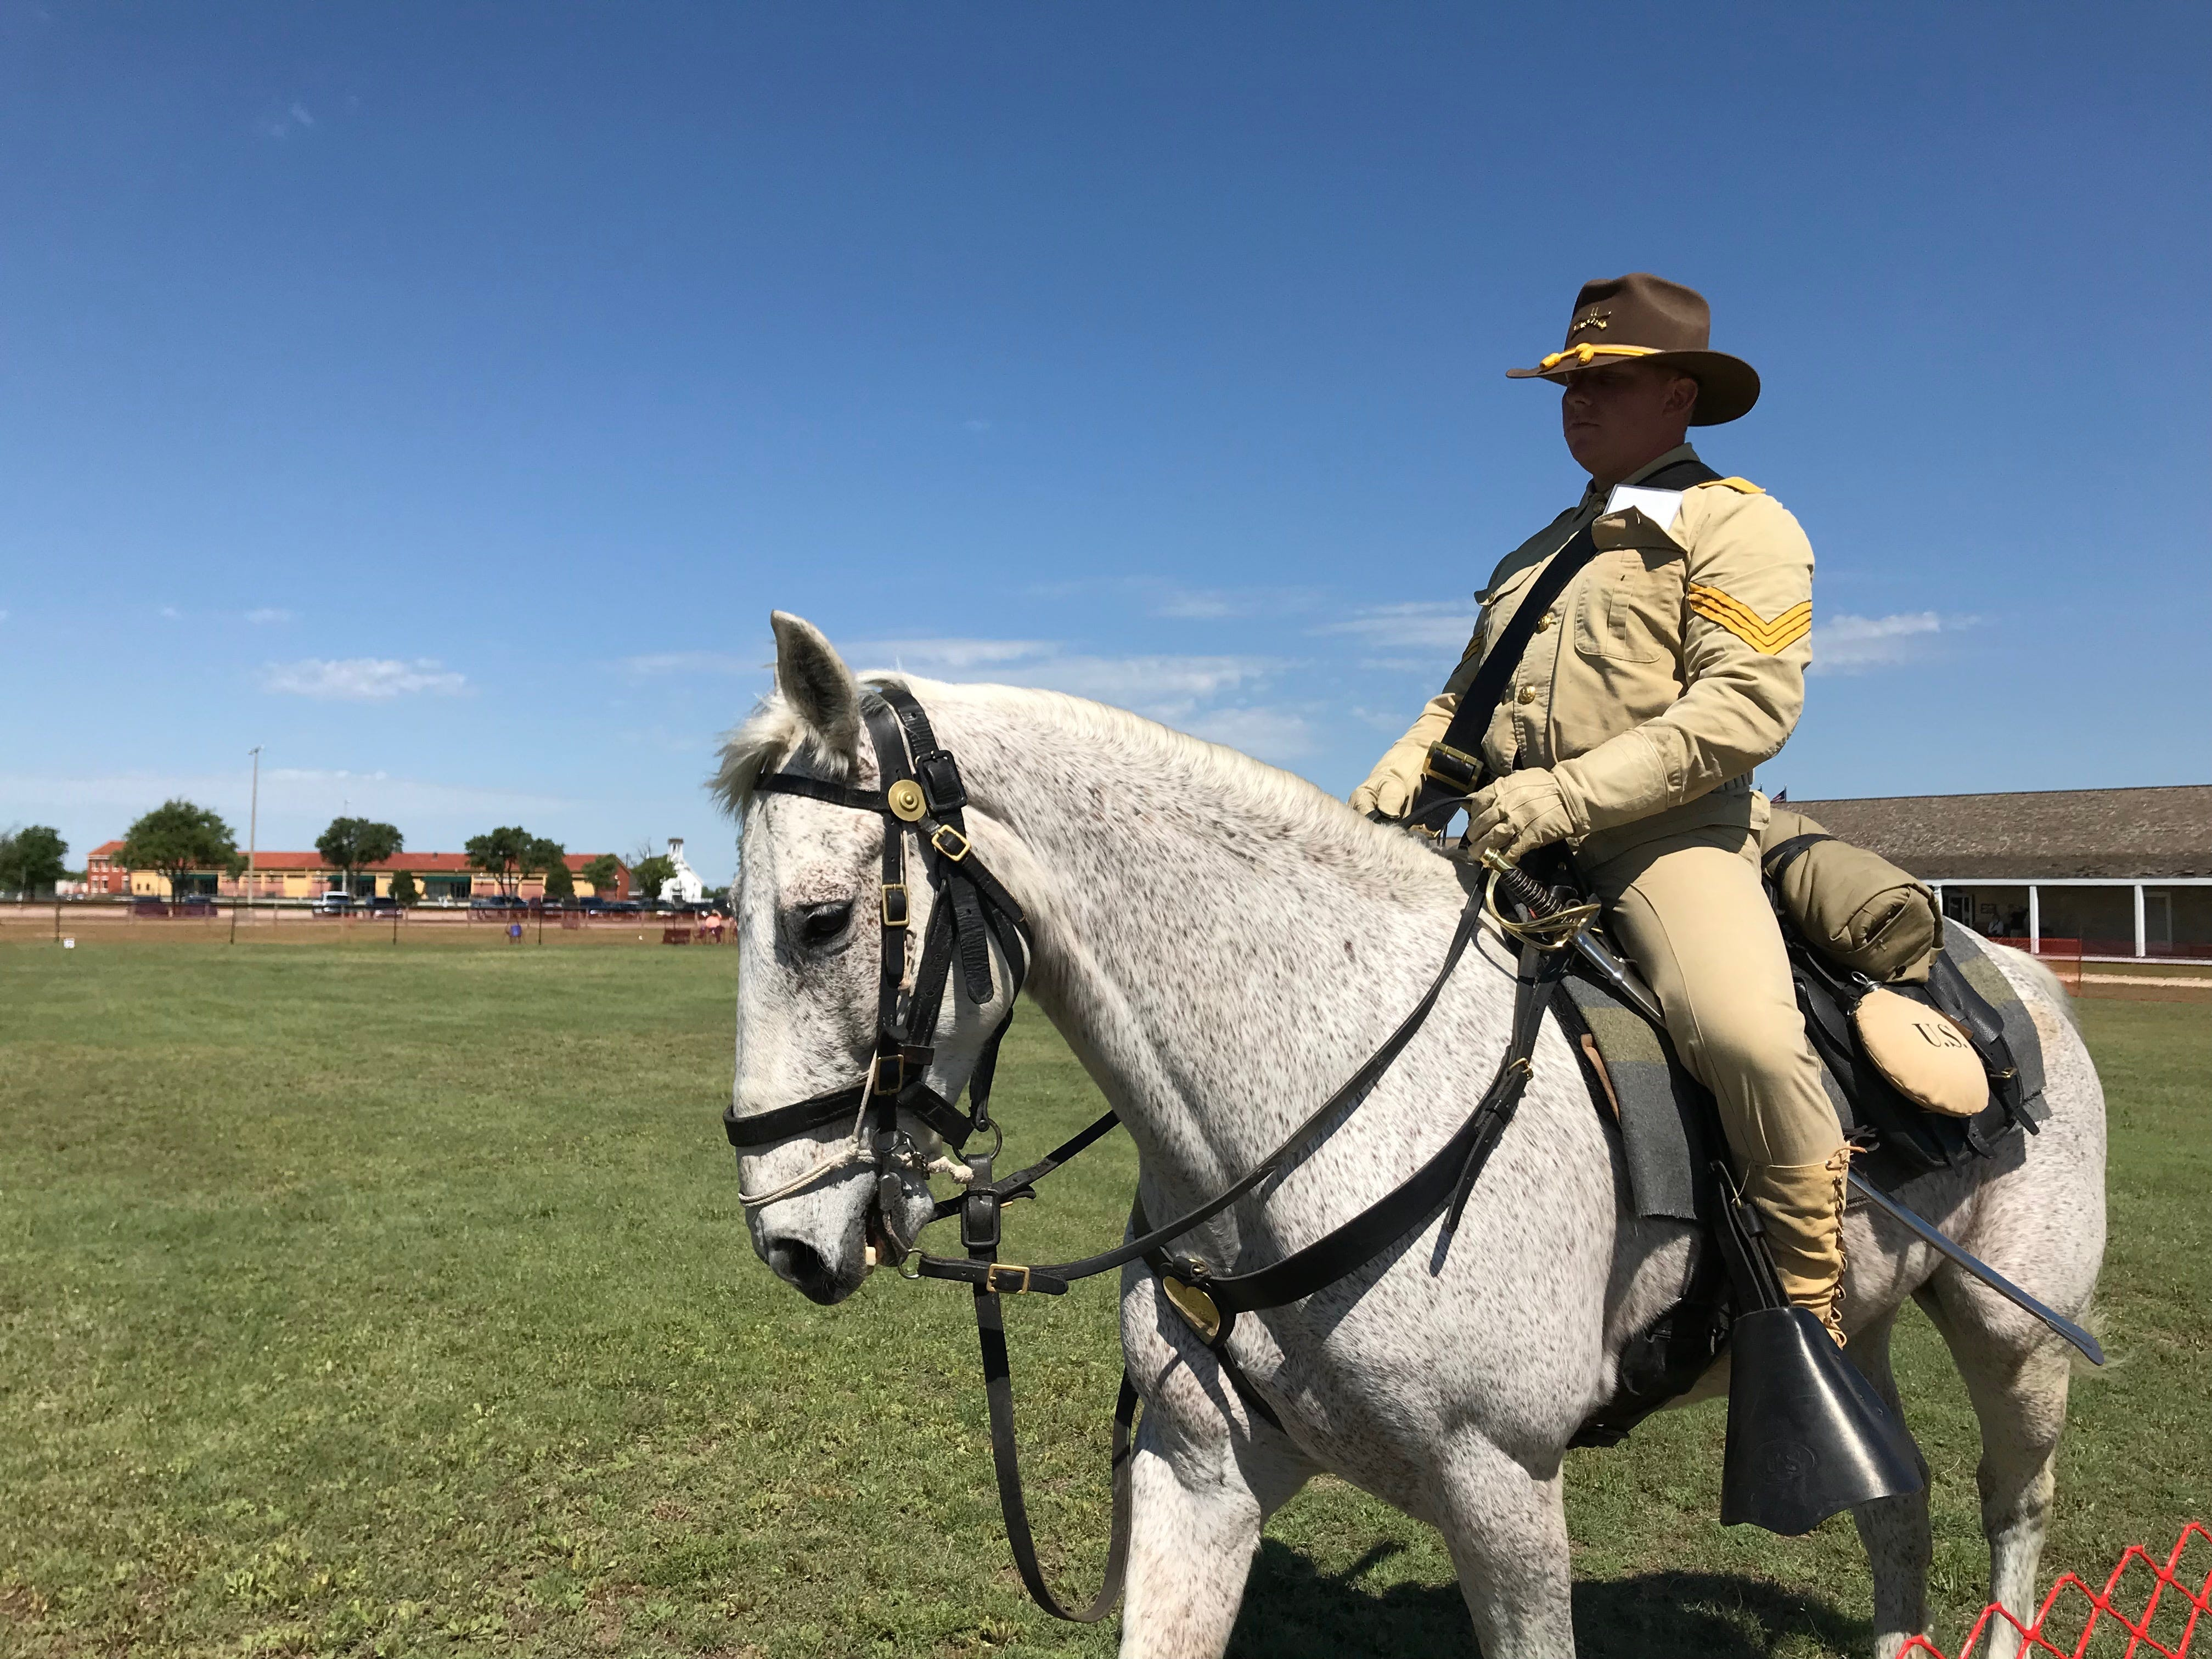 Anthony Morton, from Fort Irwin, California, begins the course at the Regional Cavalry Competition at Fort Concho, 630 S. Oakes St. on Friday, April 26, 2019.